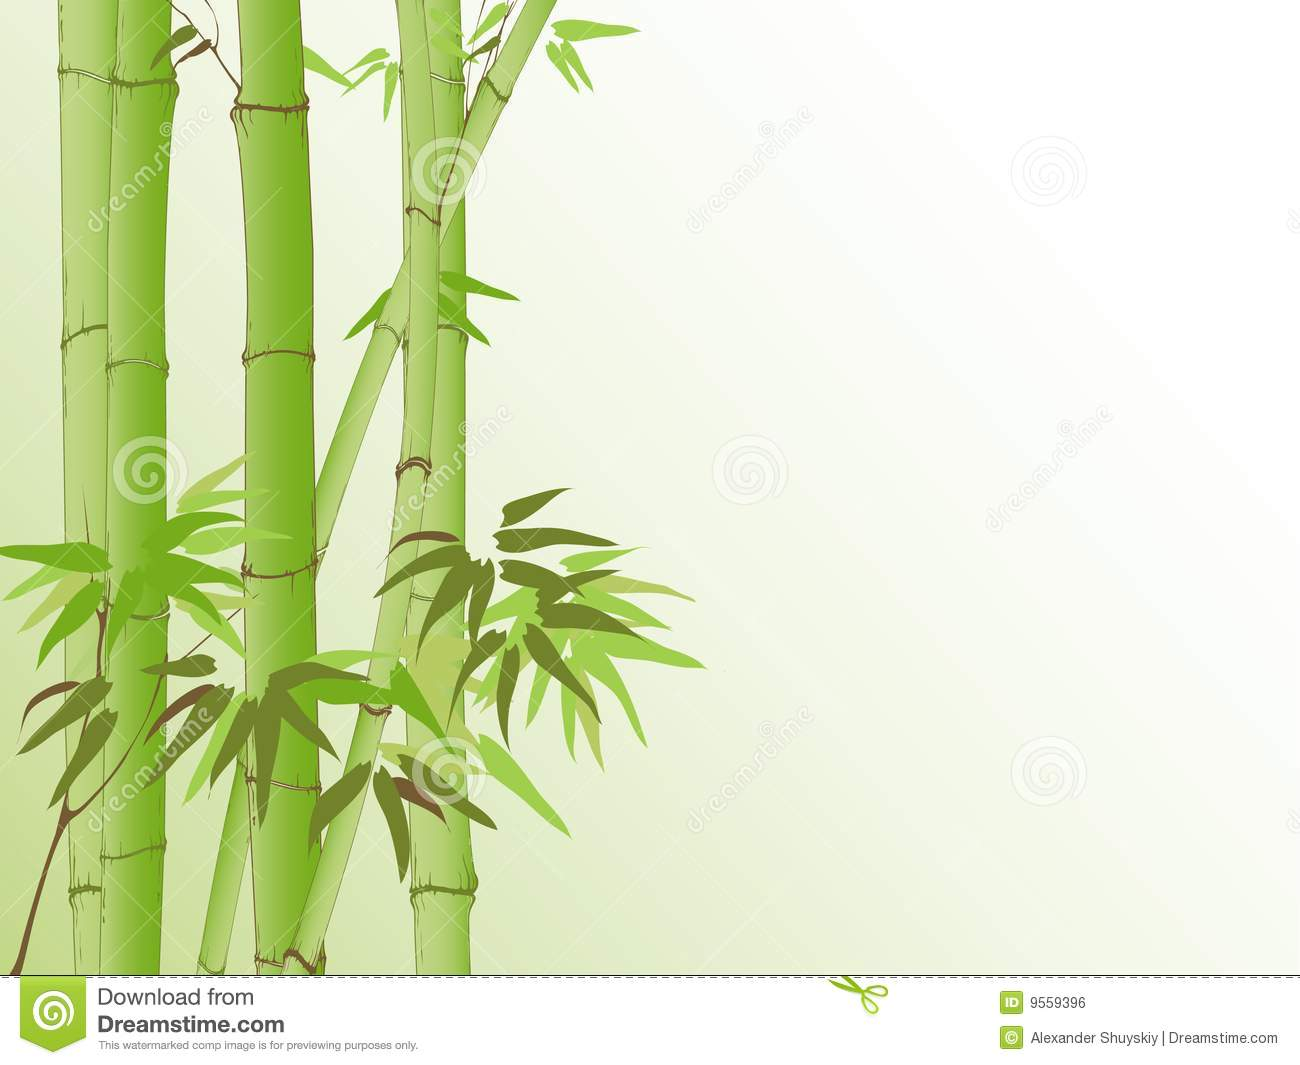 Background with bamboo pattern, design for card or background.